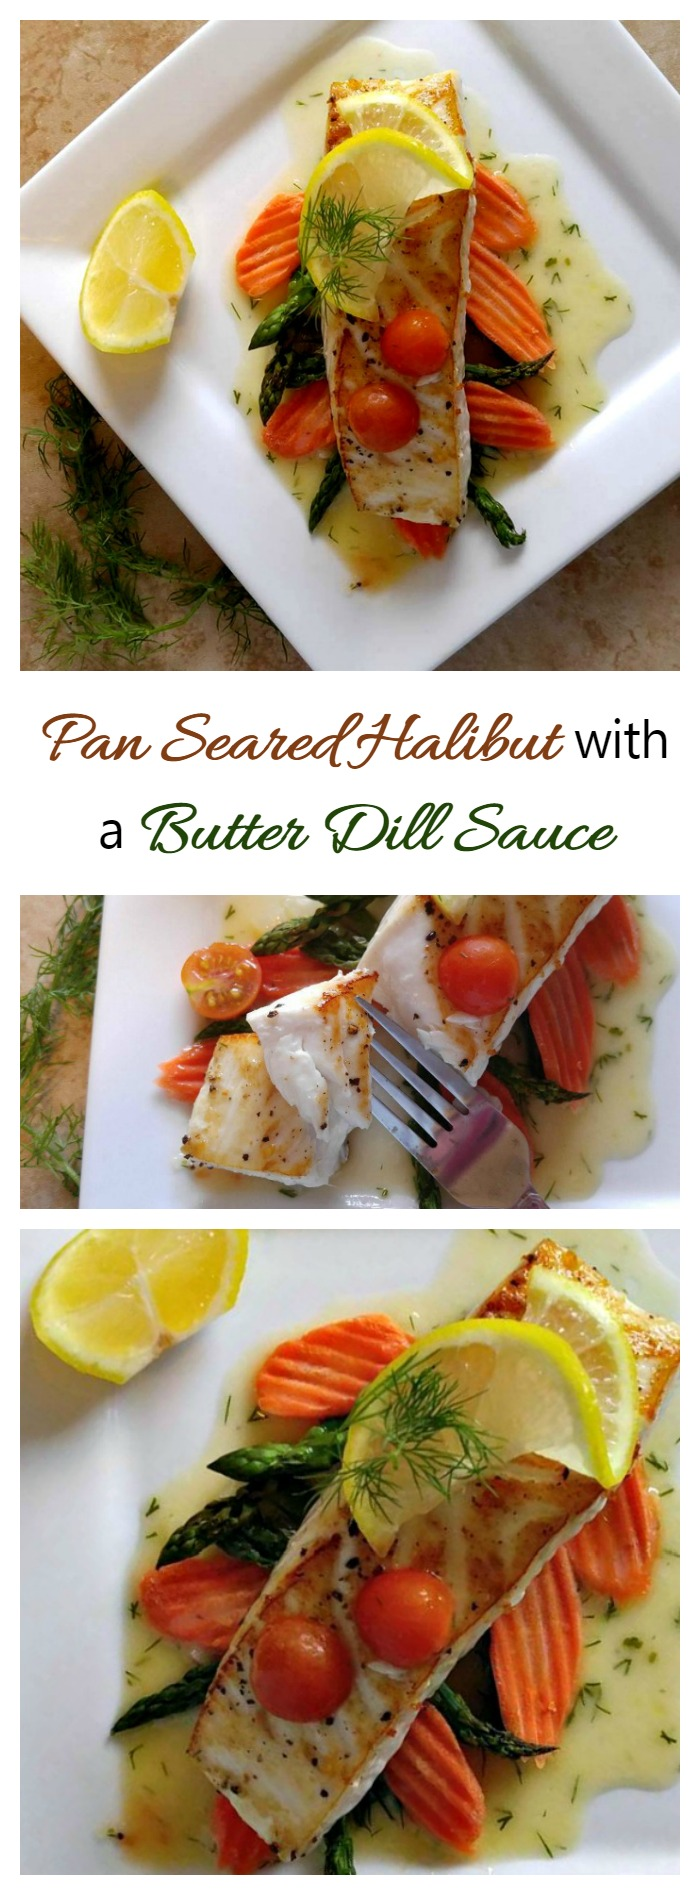 Pan Seared Halibut with a Butter Dill Sauce